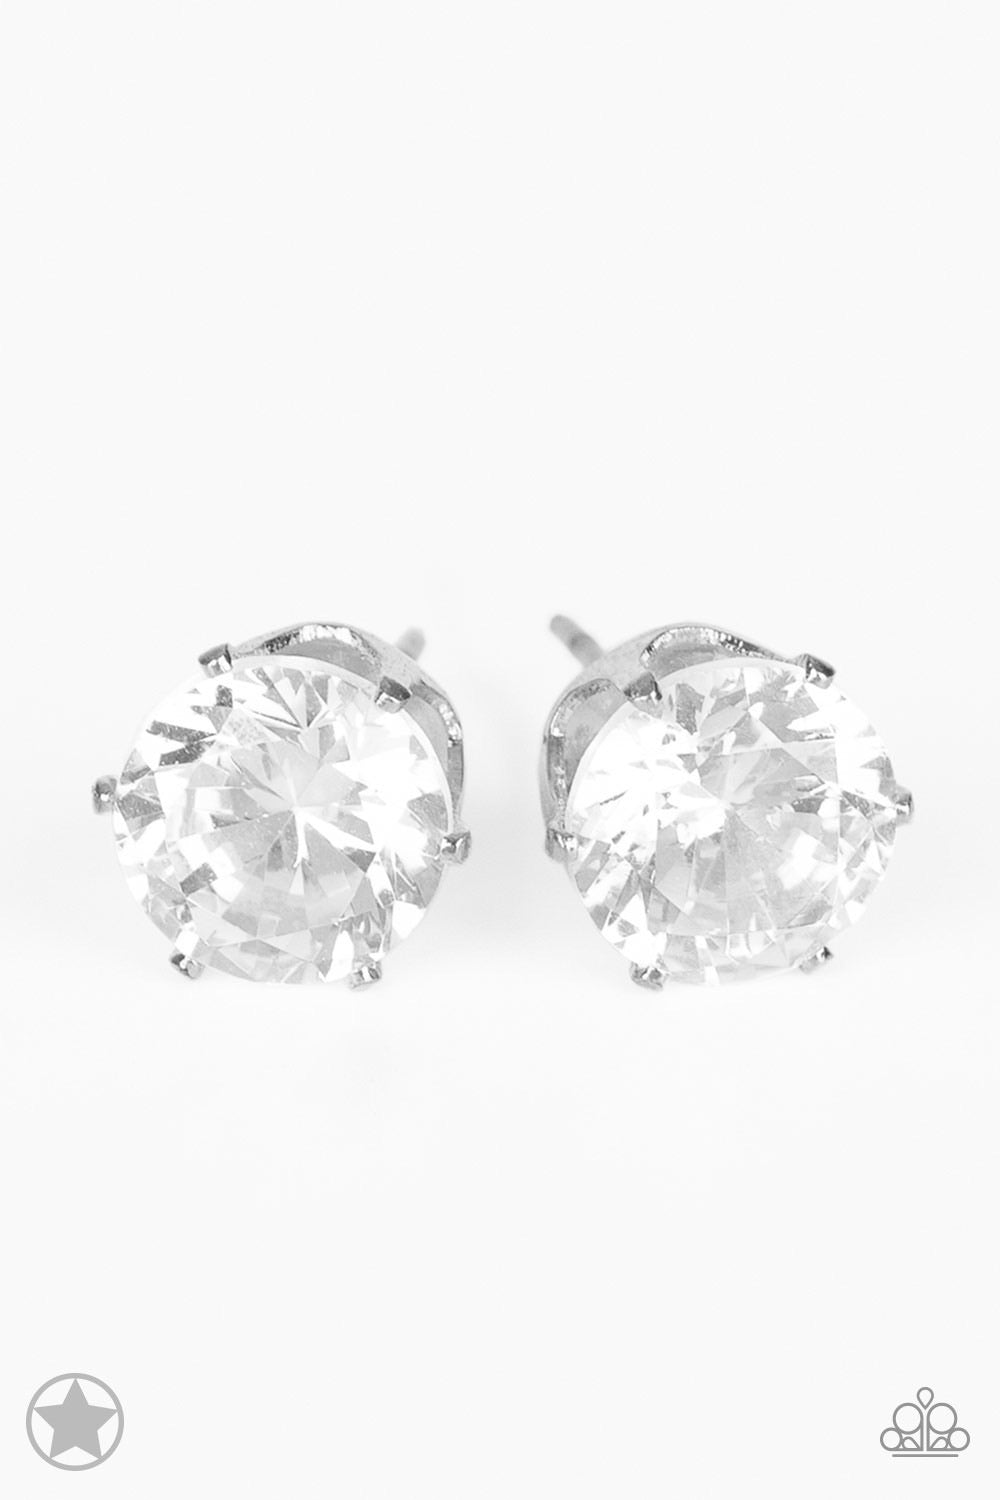 Just In TIMELESS - White Rhinestone Earrings - Paparazzi Accessories